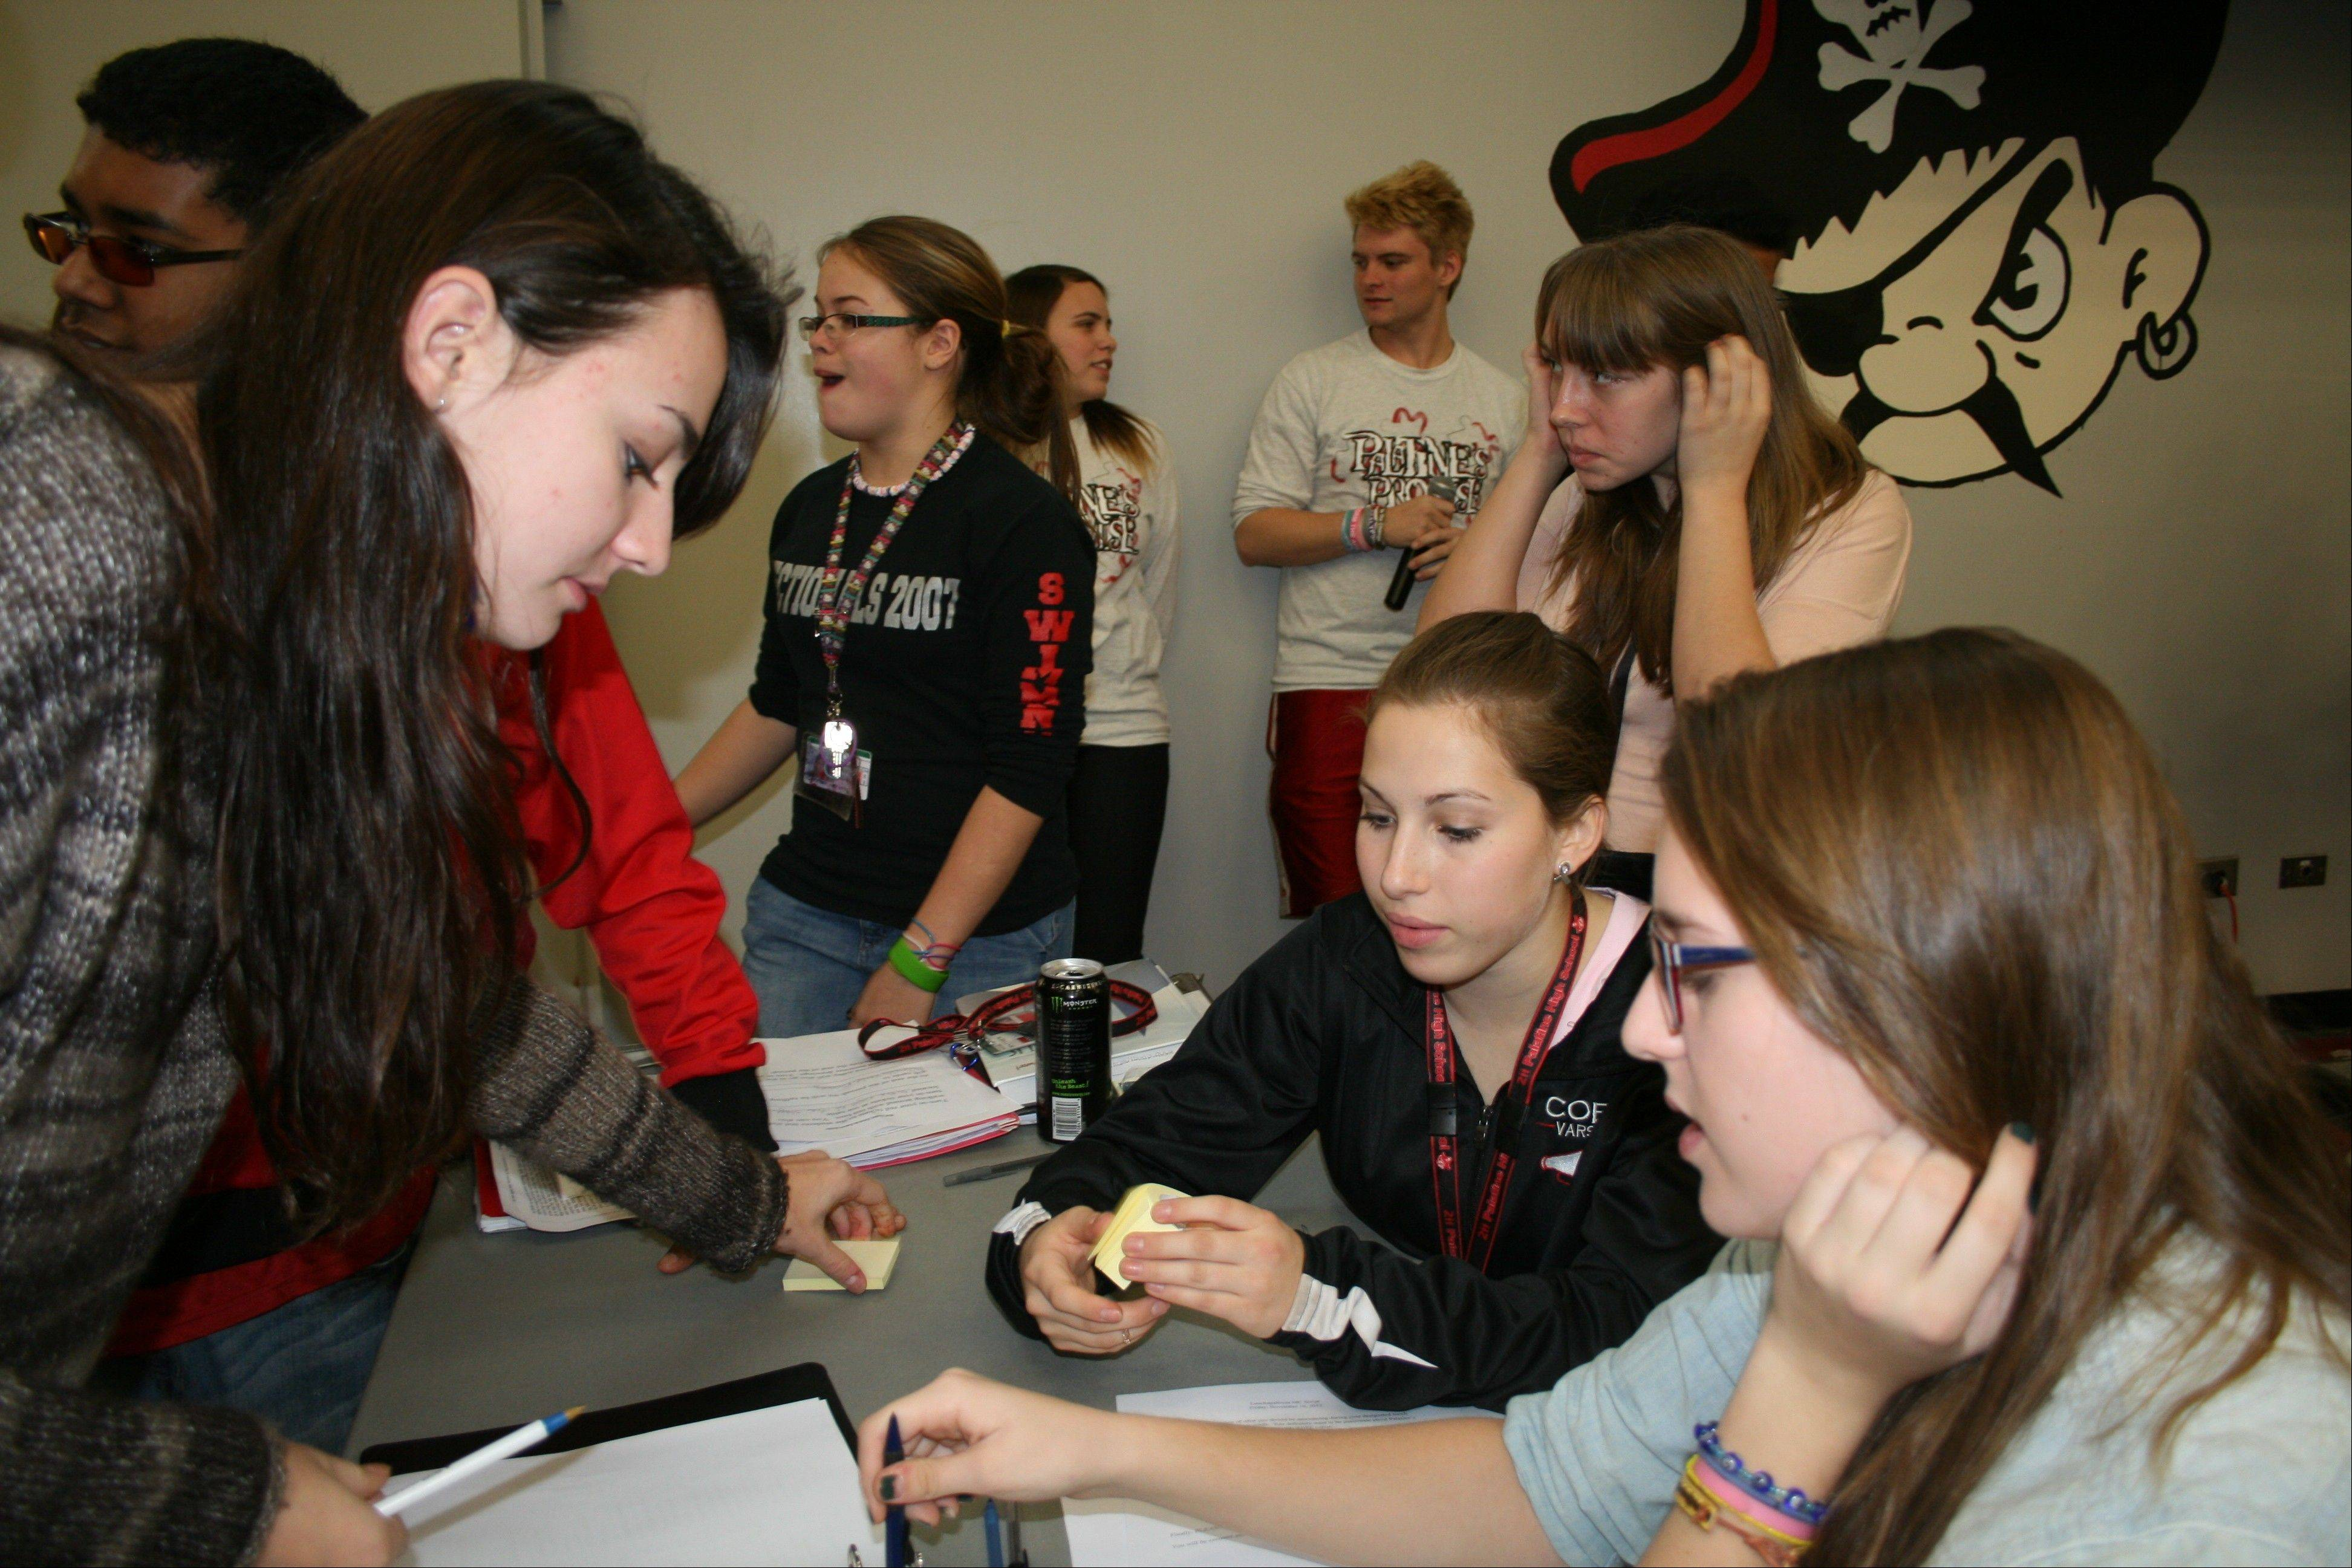 Palatine High School's Lunchapalooza event encourages anti-bullying messages and an overall acceptance of others.